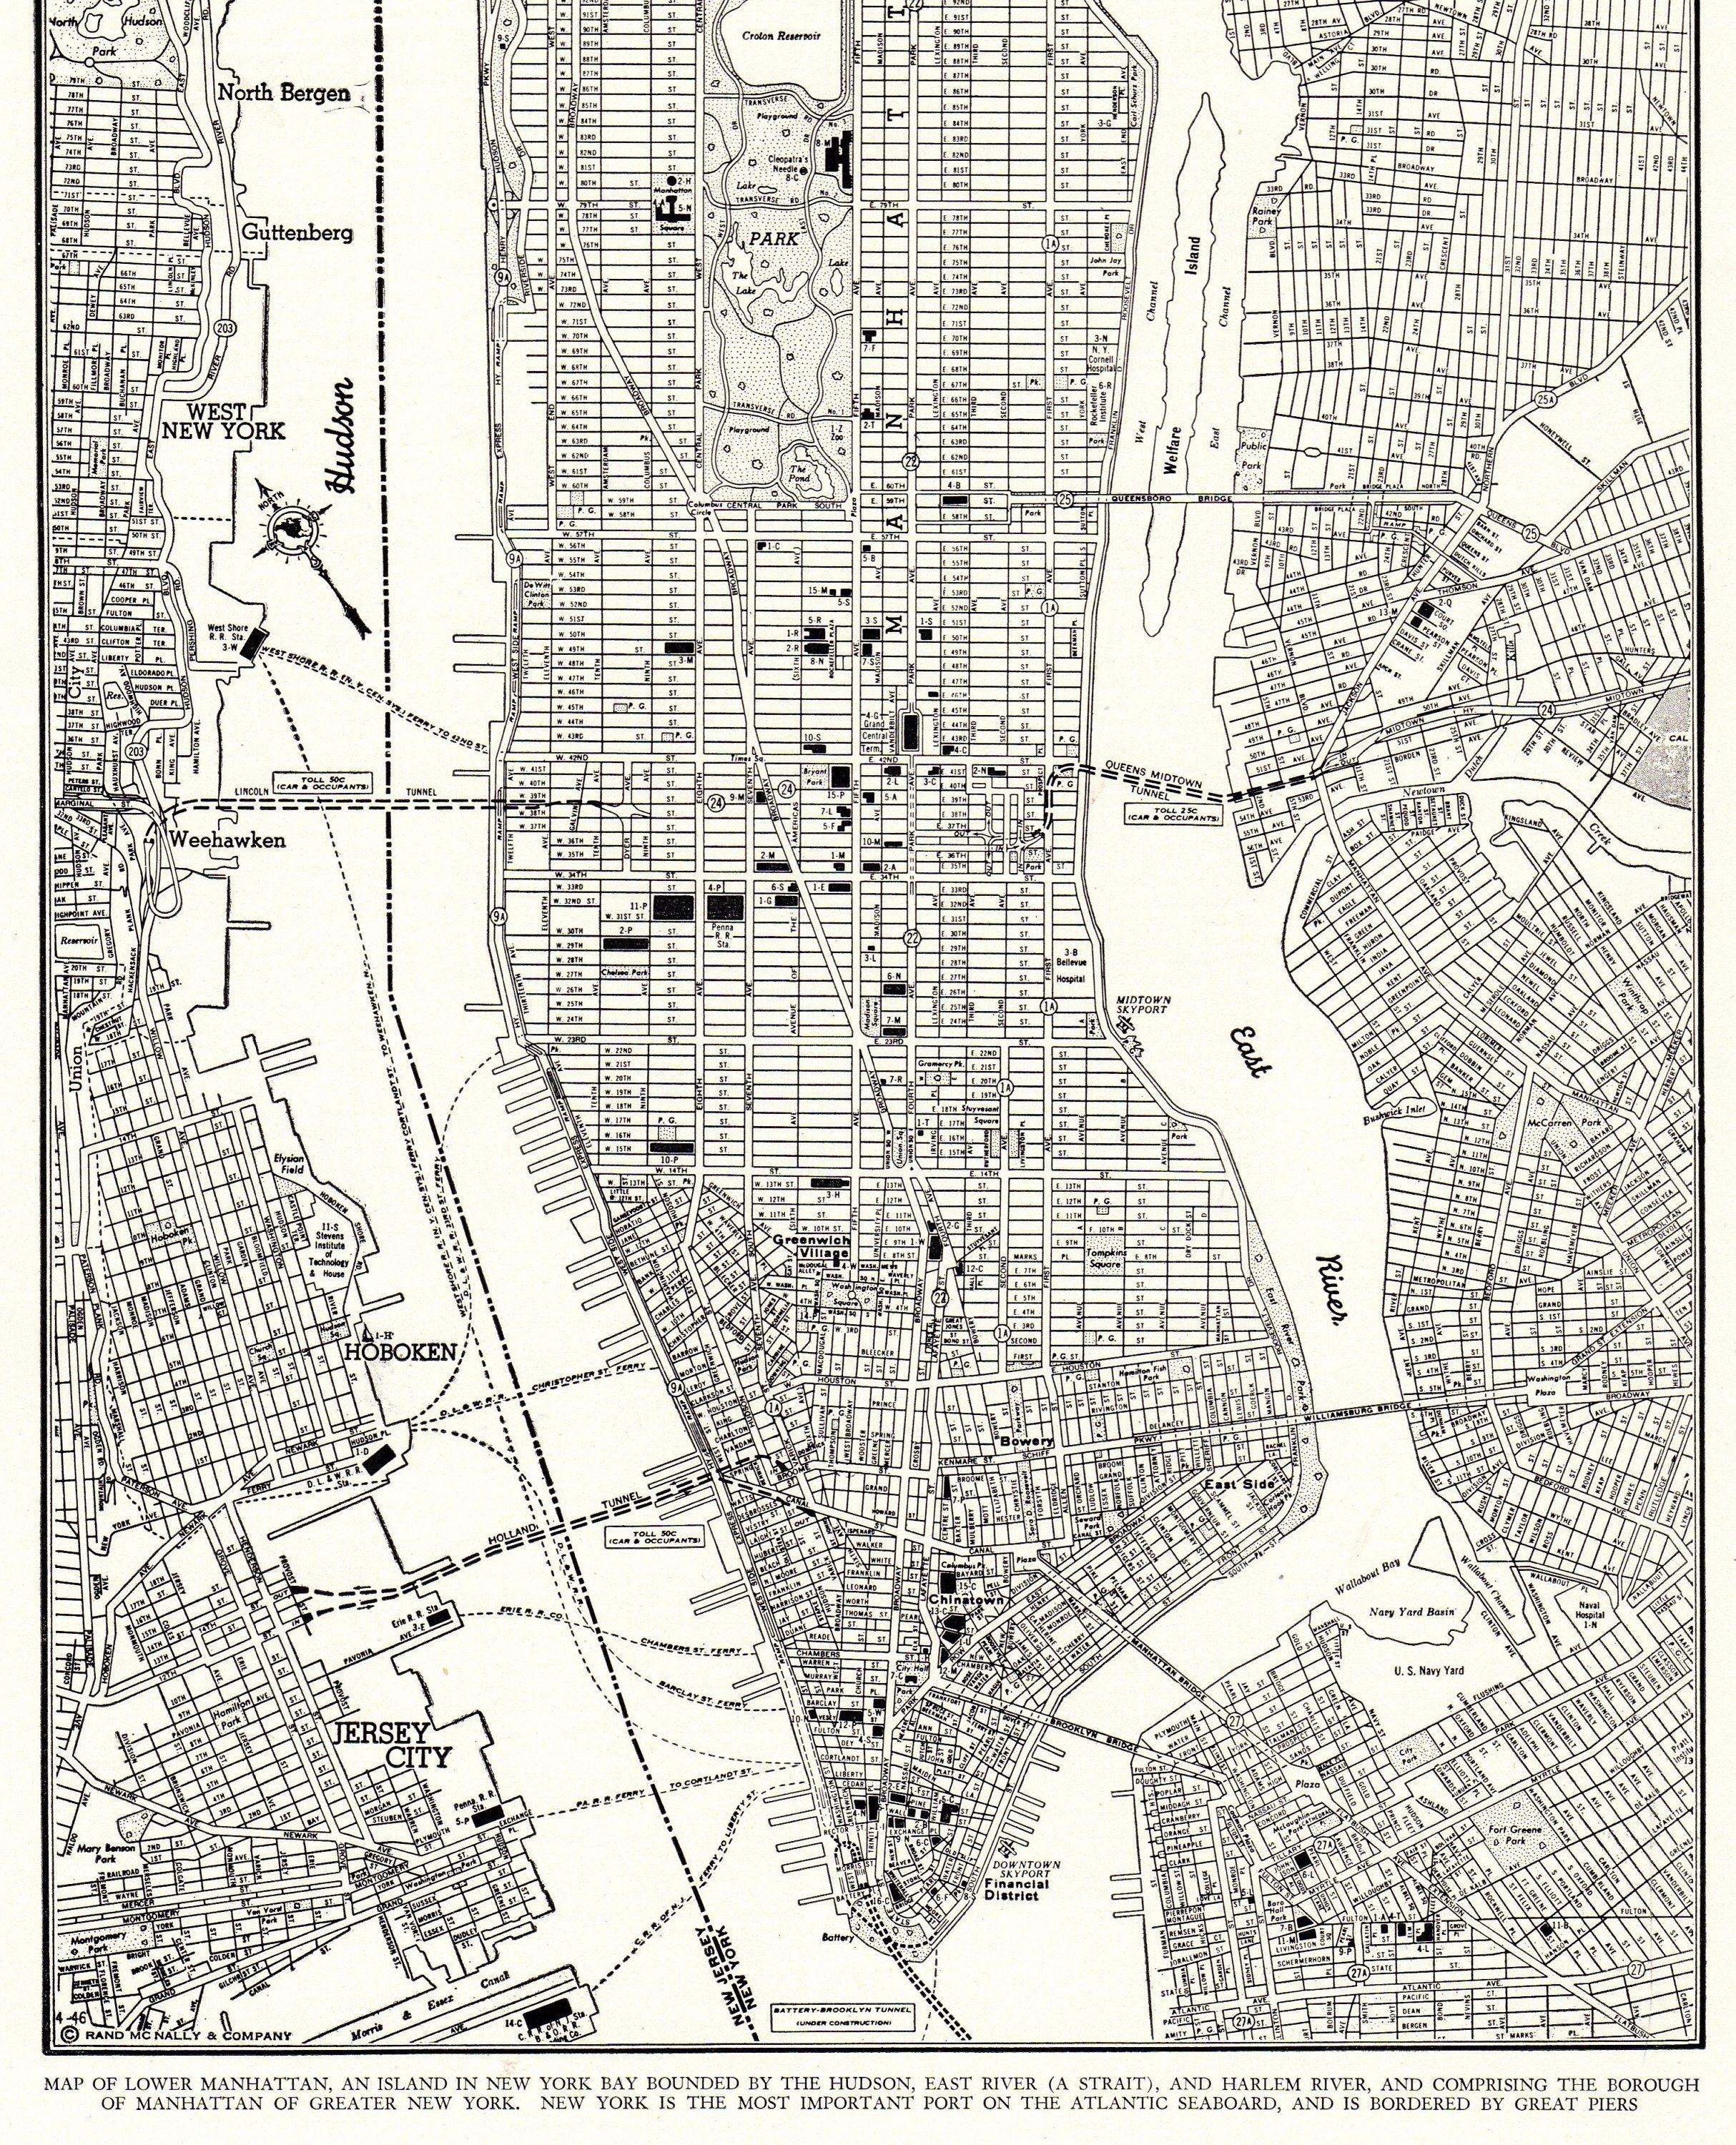 1946 Antique Manhattan Street Map Vintage New York City Map Print Black And White Map Wall Art Gift For Birthday Anniversary Wedding 9932 Map Of New York New York City Map Manhattan Map